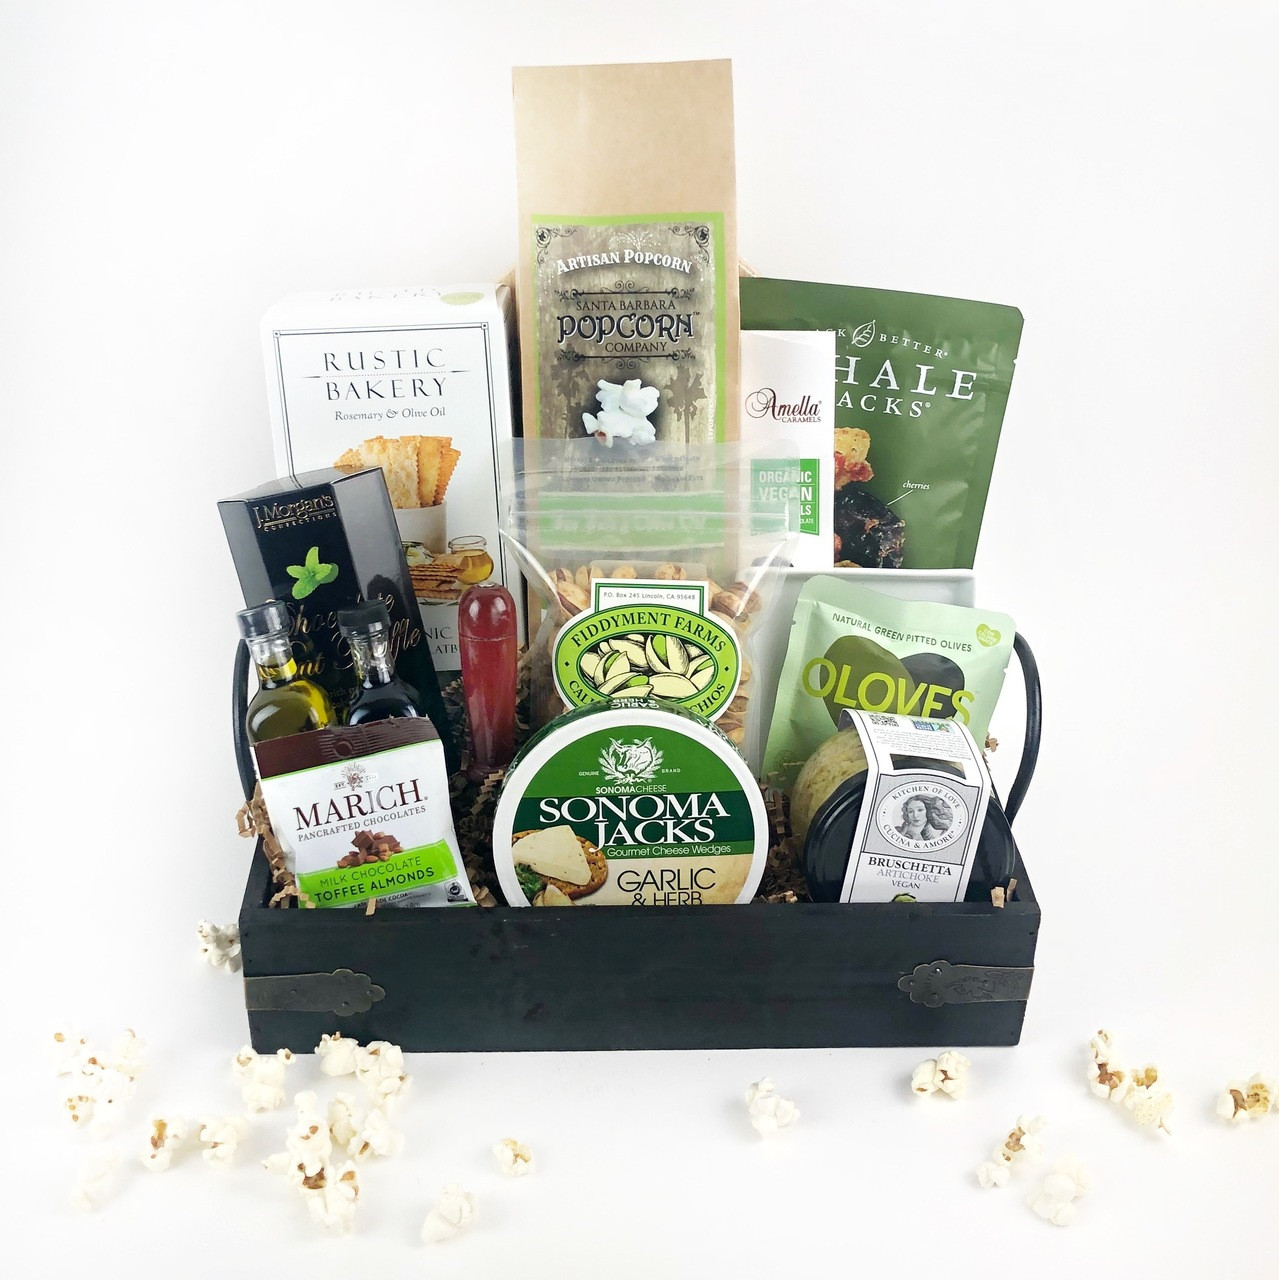 Cucina & Amore White Balsamic Vinegar Green Goods